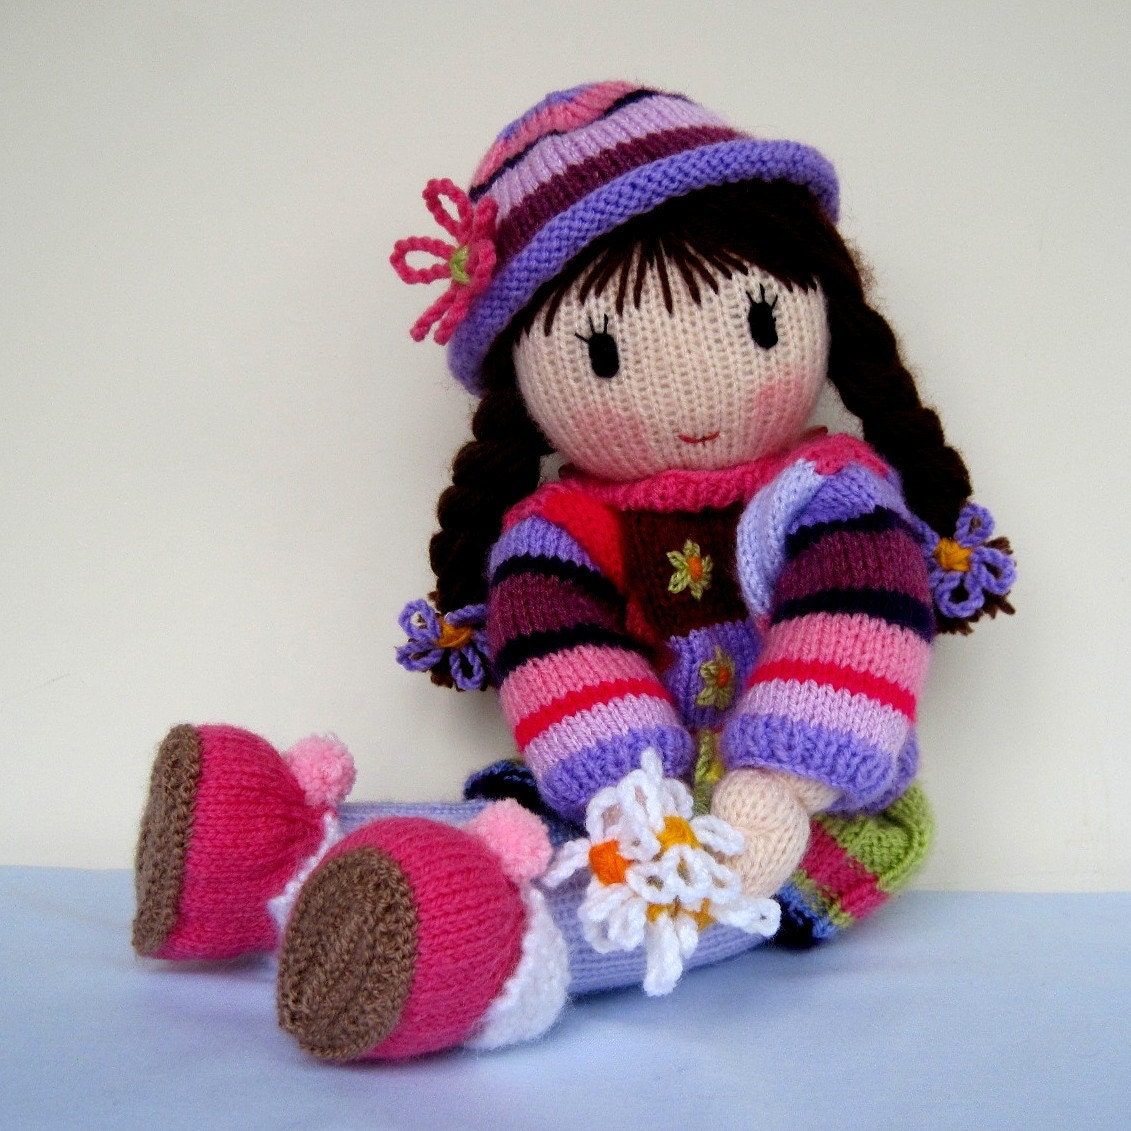 Knitting Patterns For Toys On Etsy : Posy Doll knitting pattern knitted doll Pdf INSTANT by dollytime